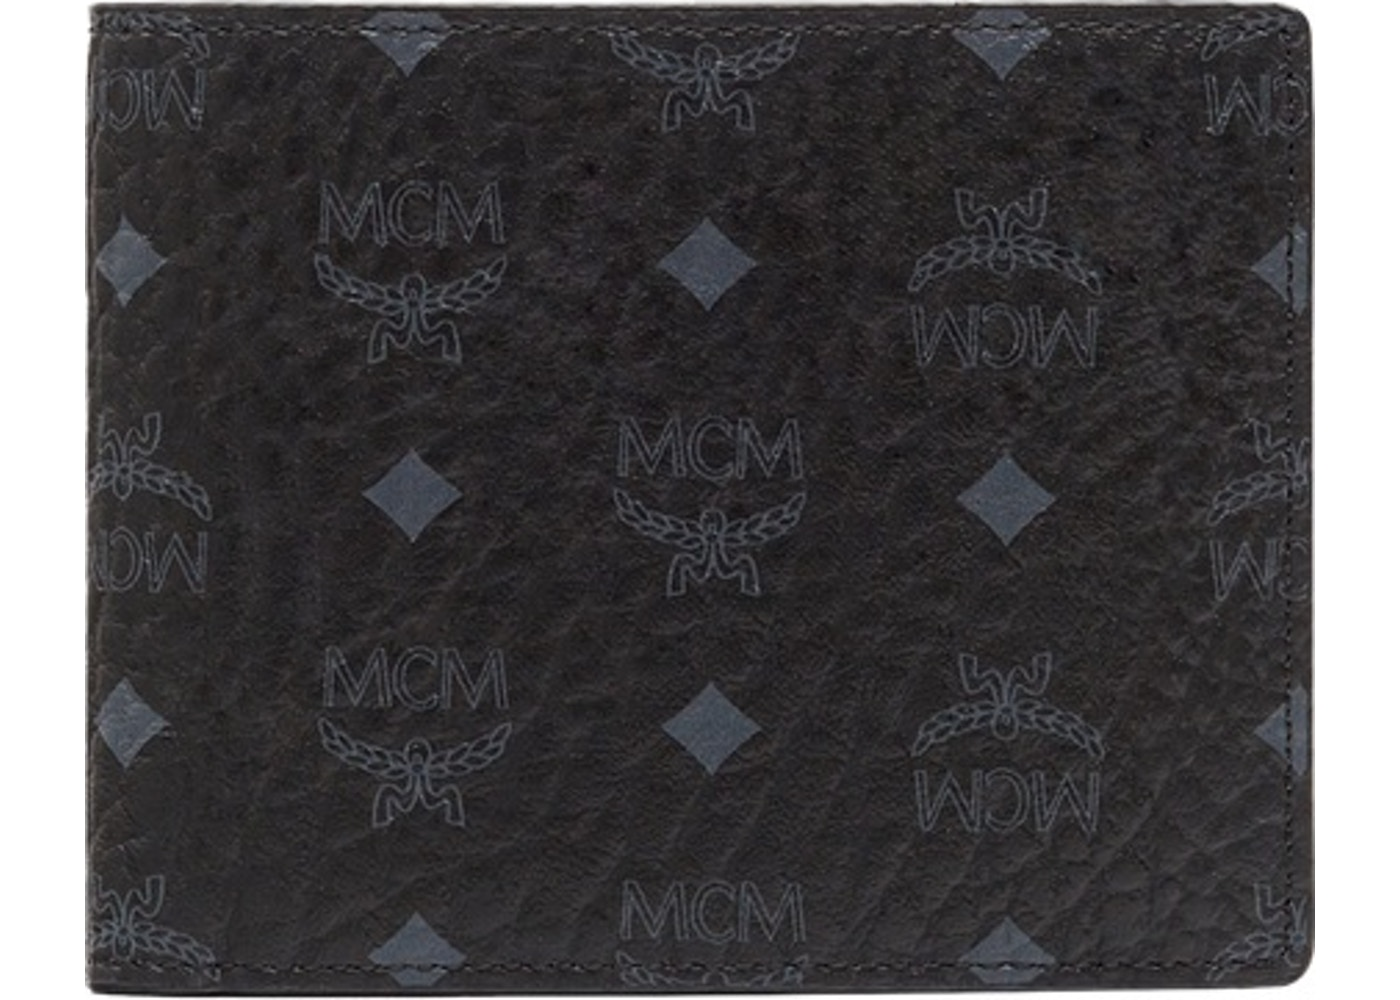 d31ca15f67bc MCM Claus Bifold Wallet Visetos Small Black. Visetos Small Black